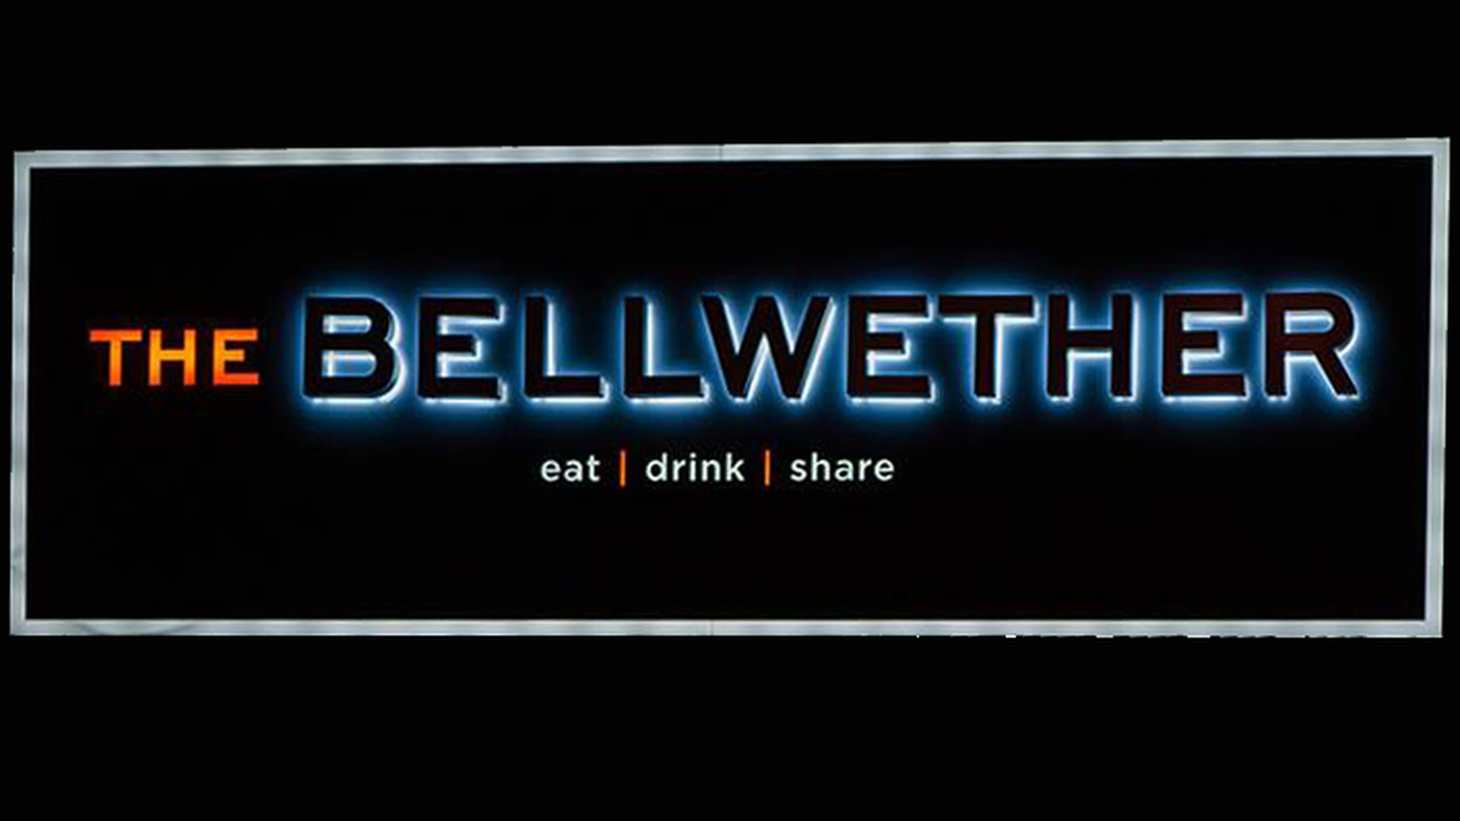 The next time you've got the urge for a patty melt on rye with taleggio cheese and sweet caramelized onions, or some meatballs baked with tomato and ricotta that are served with great grilled bread, head to The Bellwether in Studio City.